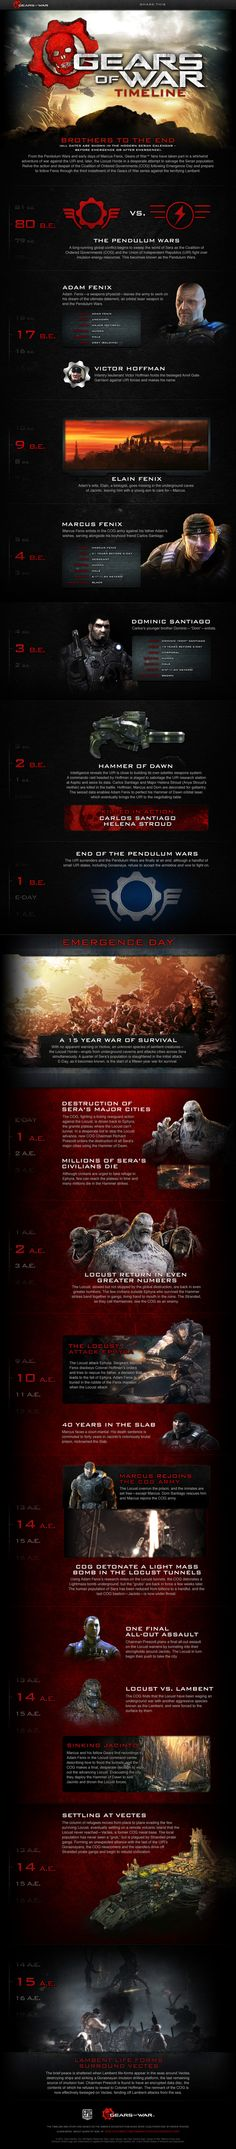 Gears of War Timeline | Visit our new infographic gallery at visualoop.com/